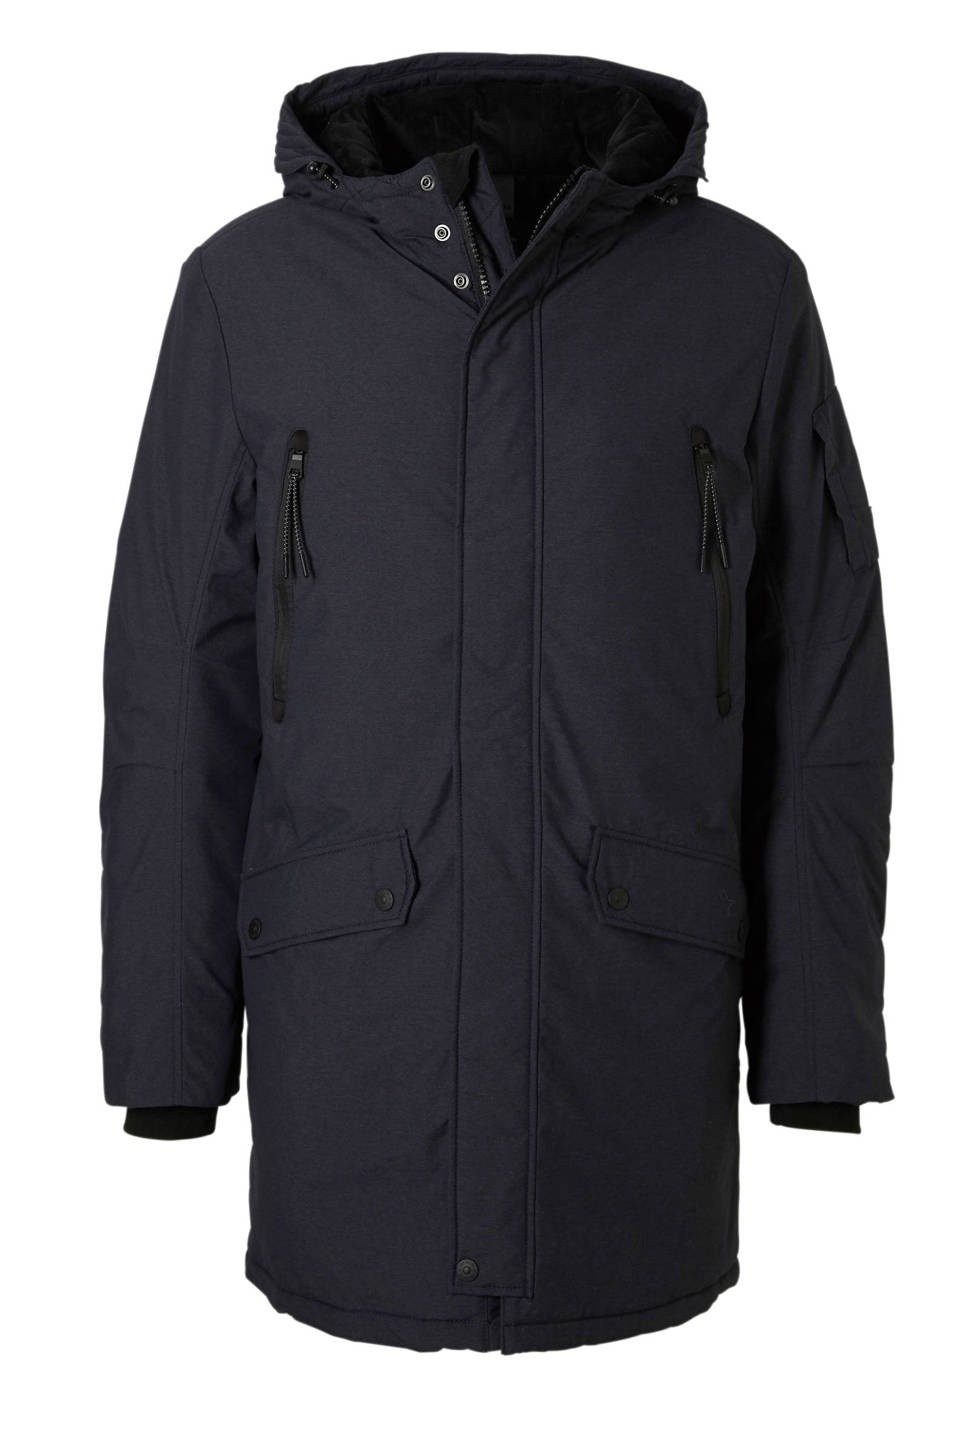 Winterjas Parka Heren.Tom Tailor Heren Winterjas Parka